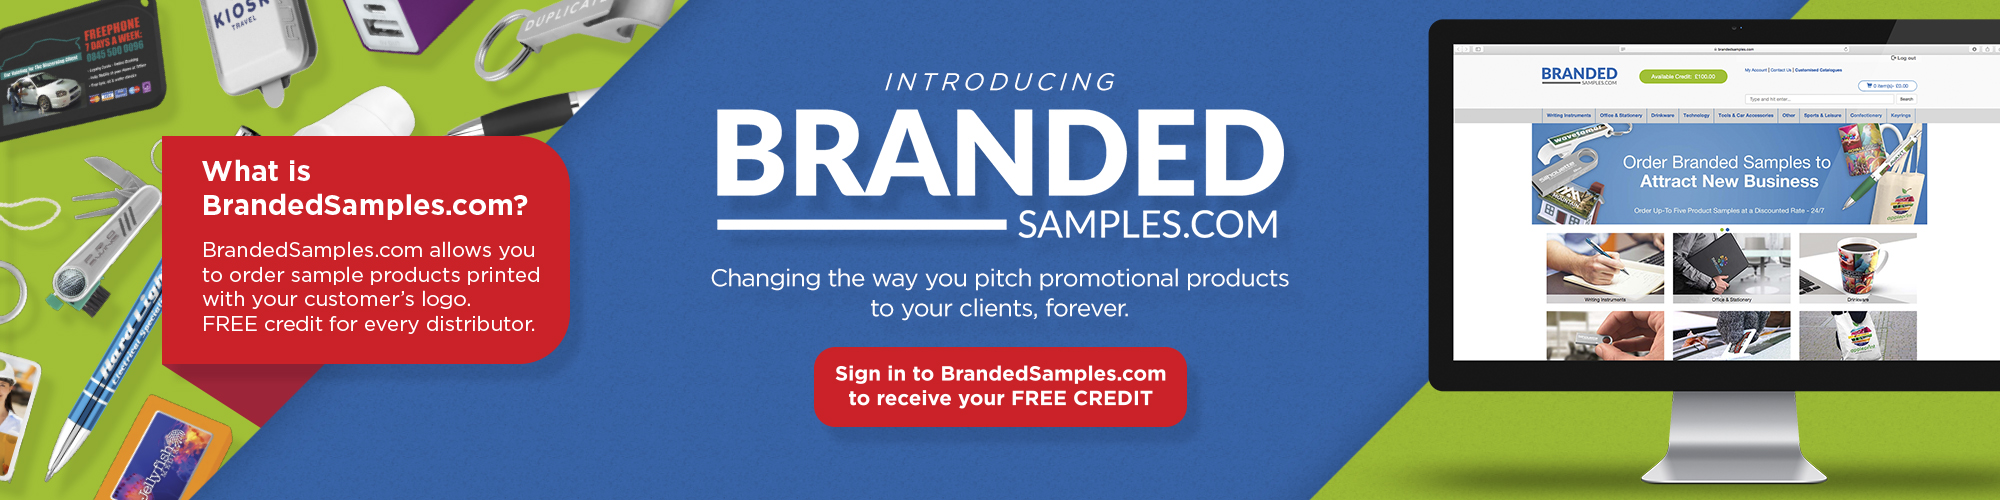 BRANDED-SAMPLES desktop banner